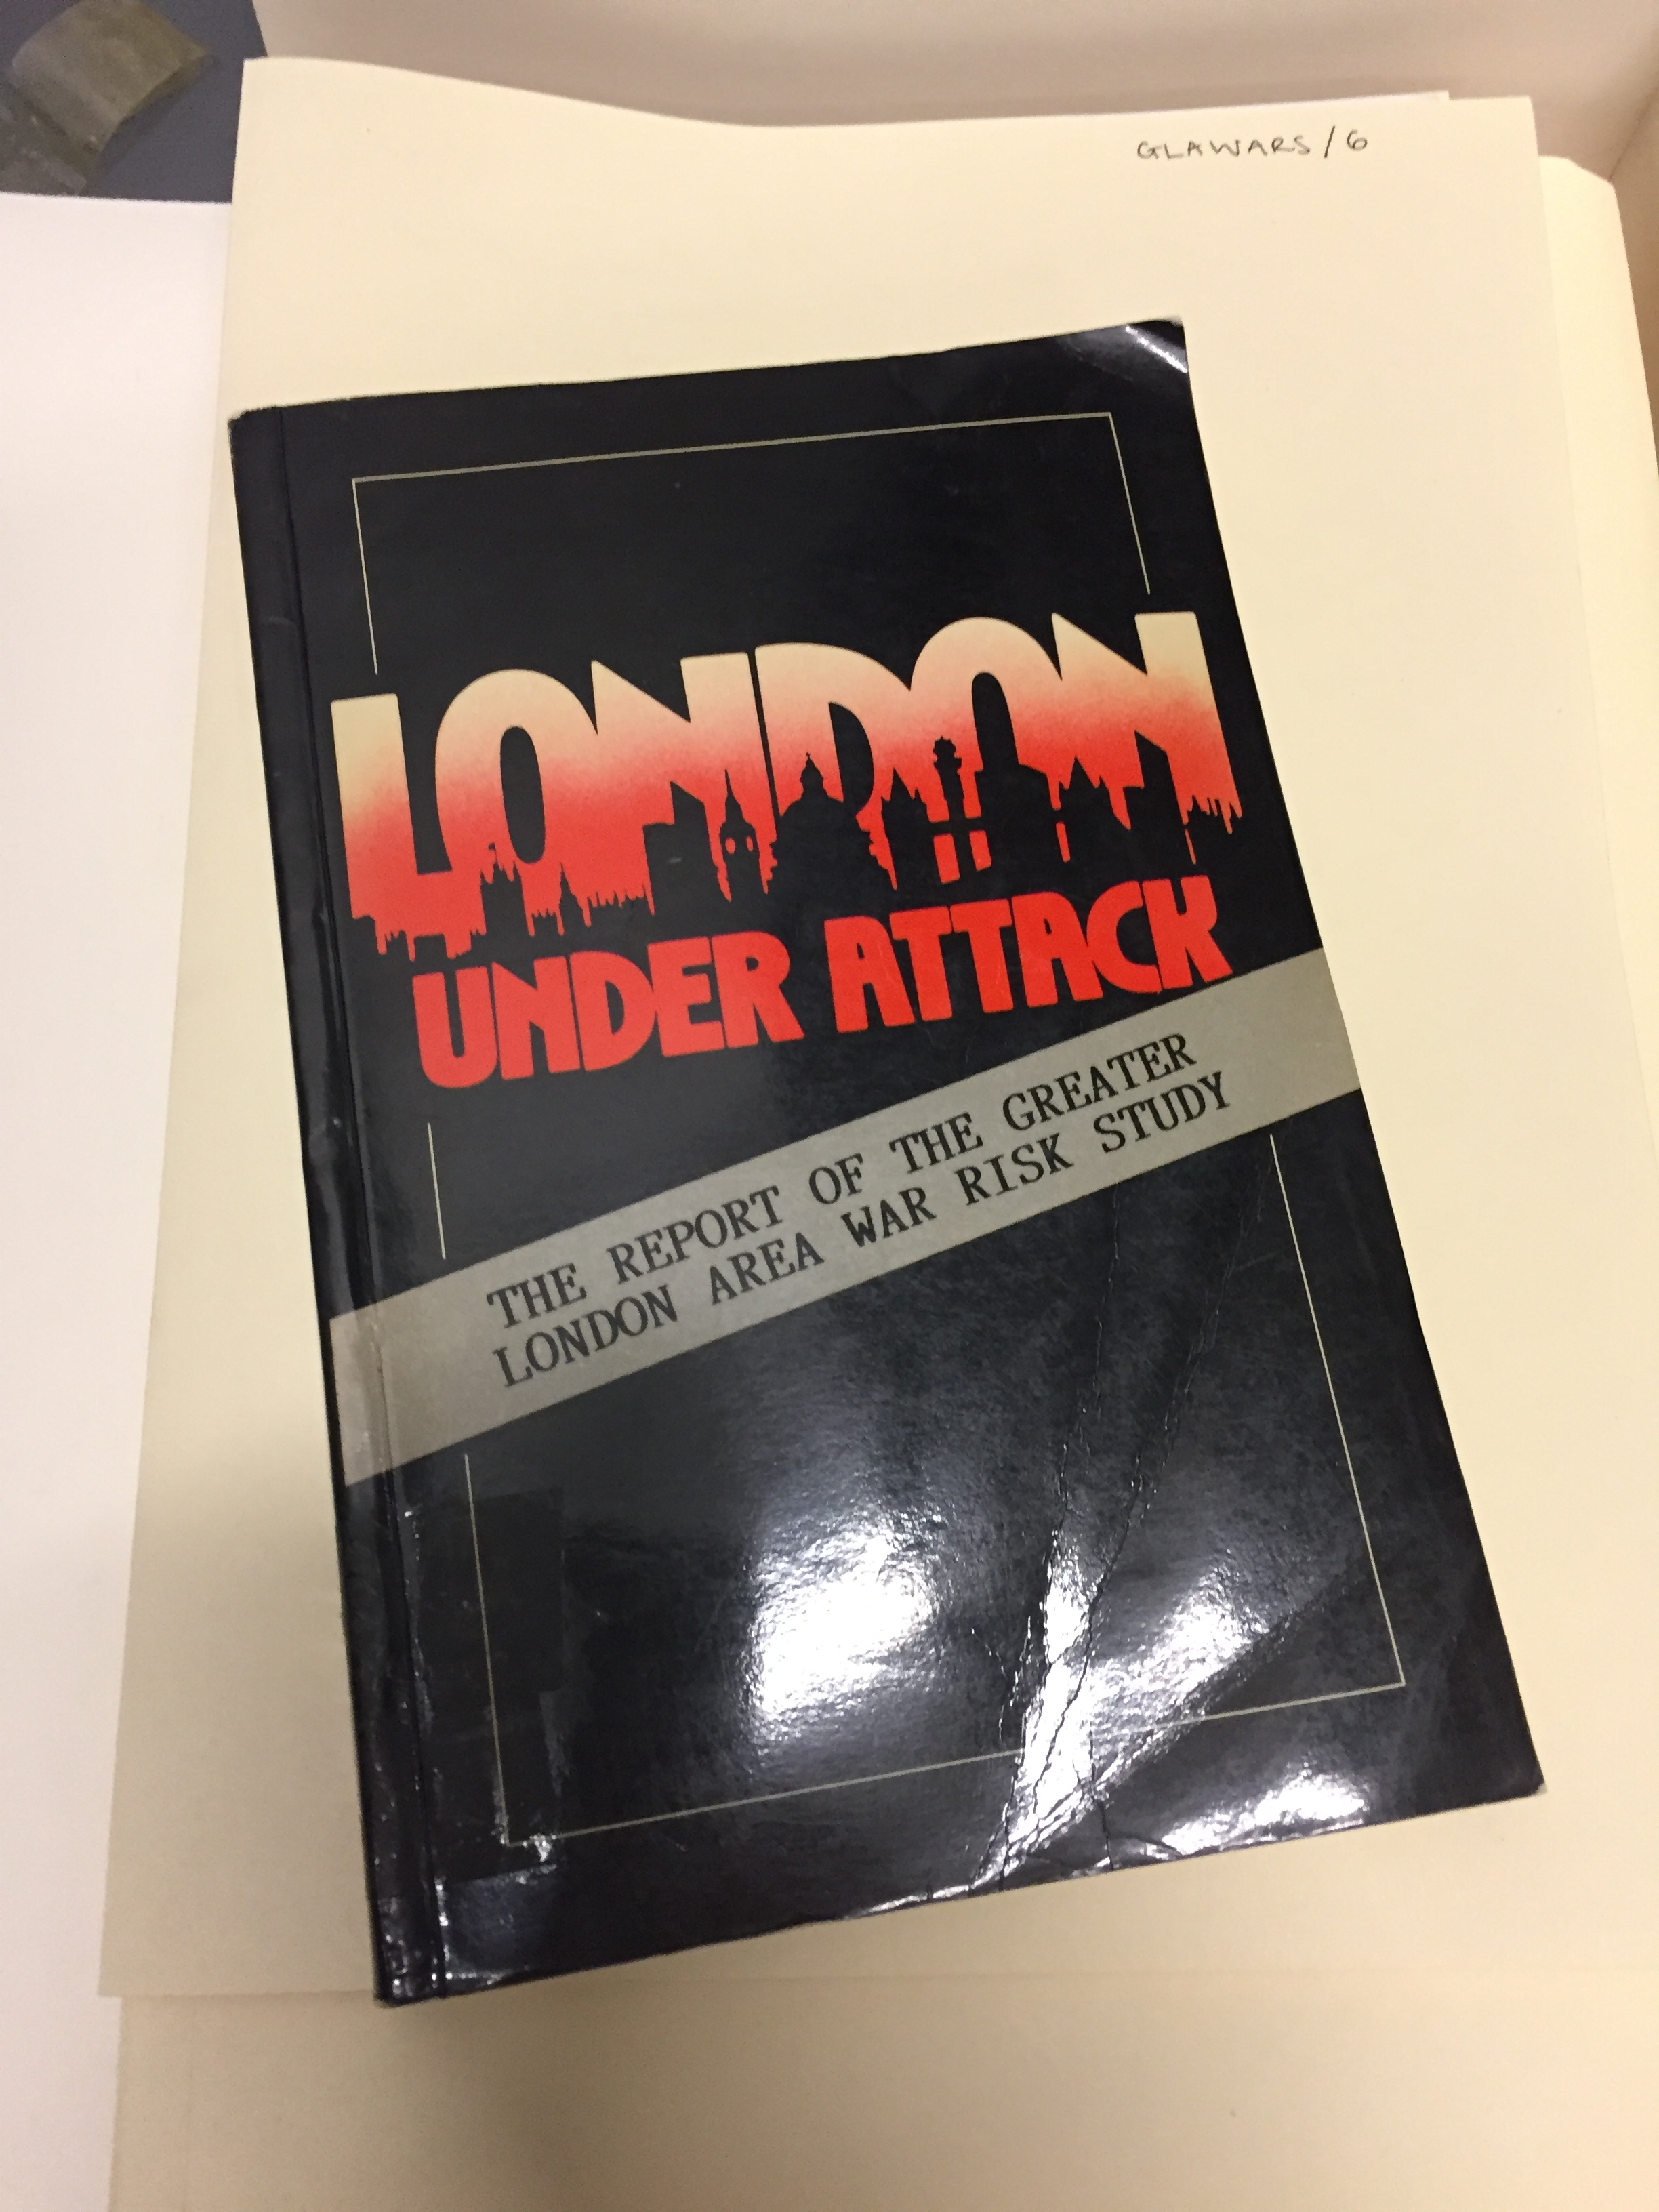 Study Report - London Under Attack